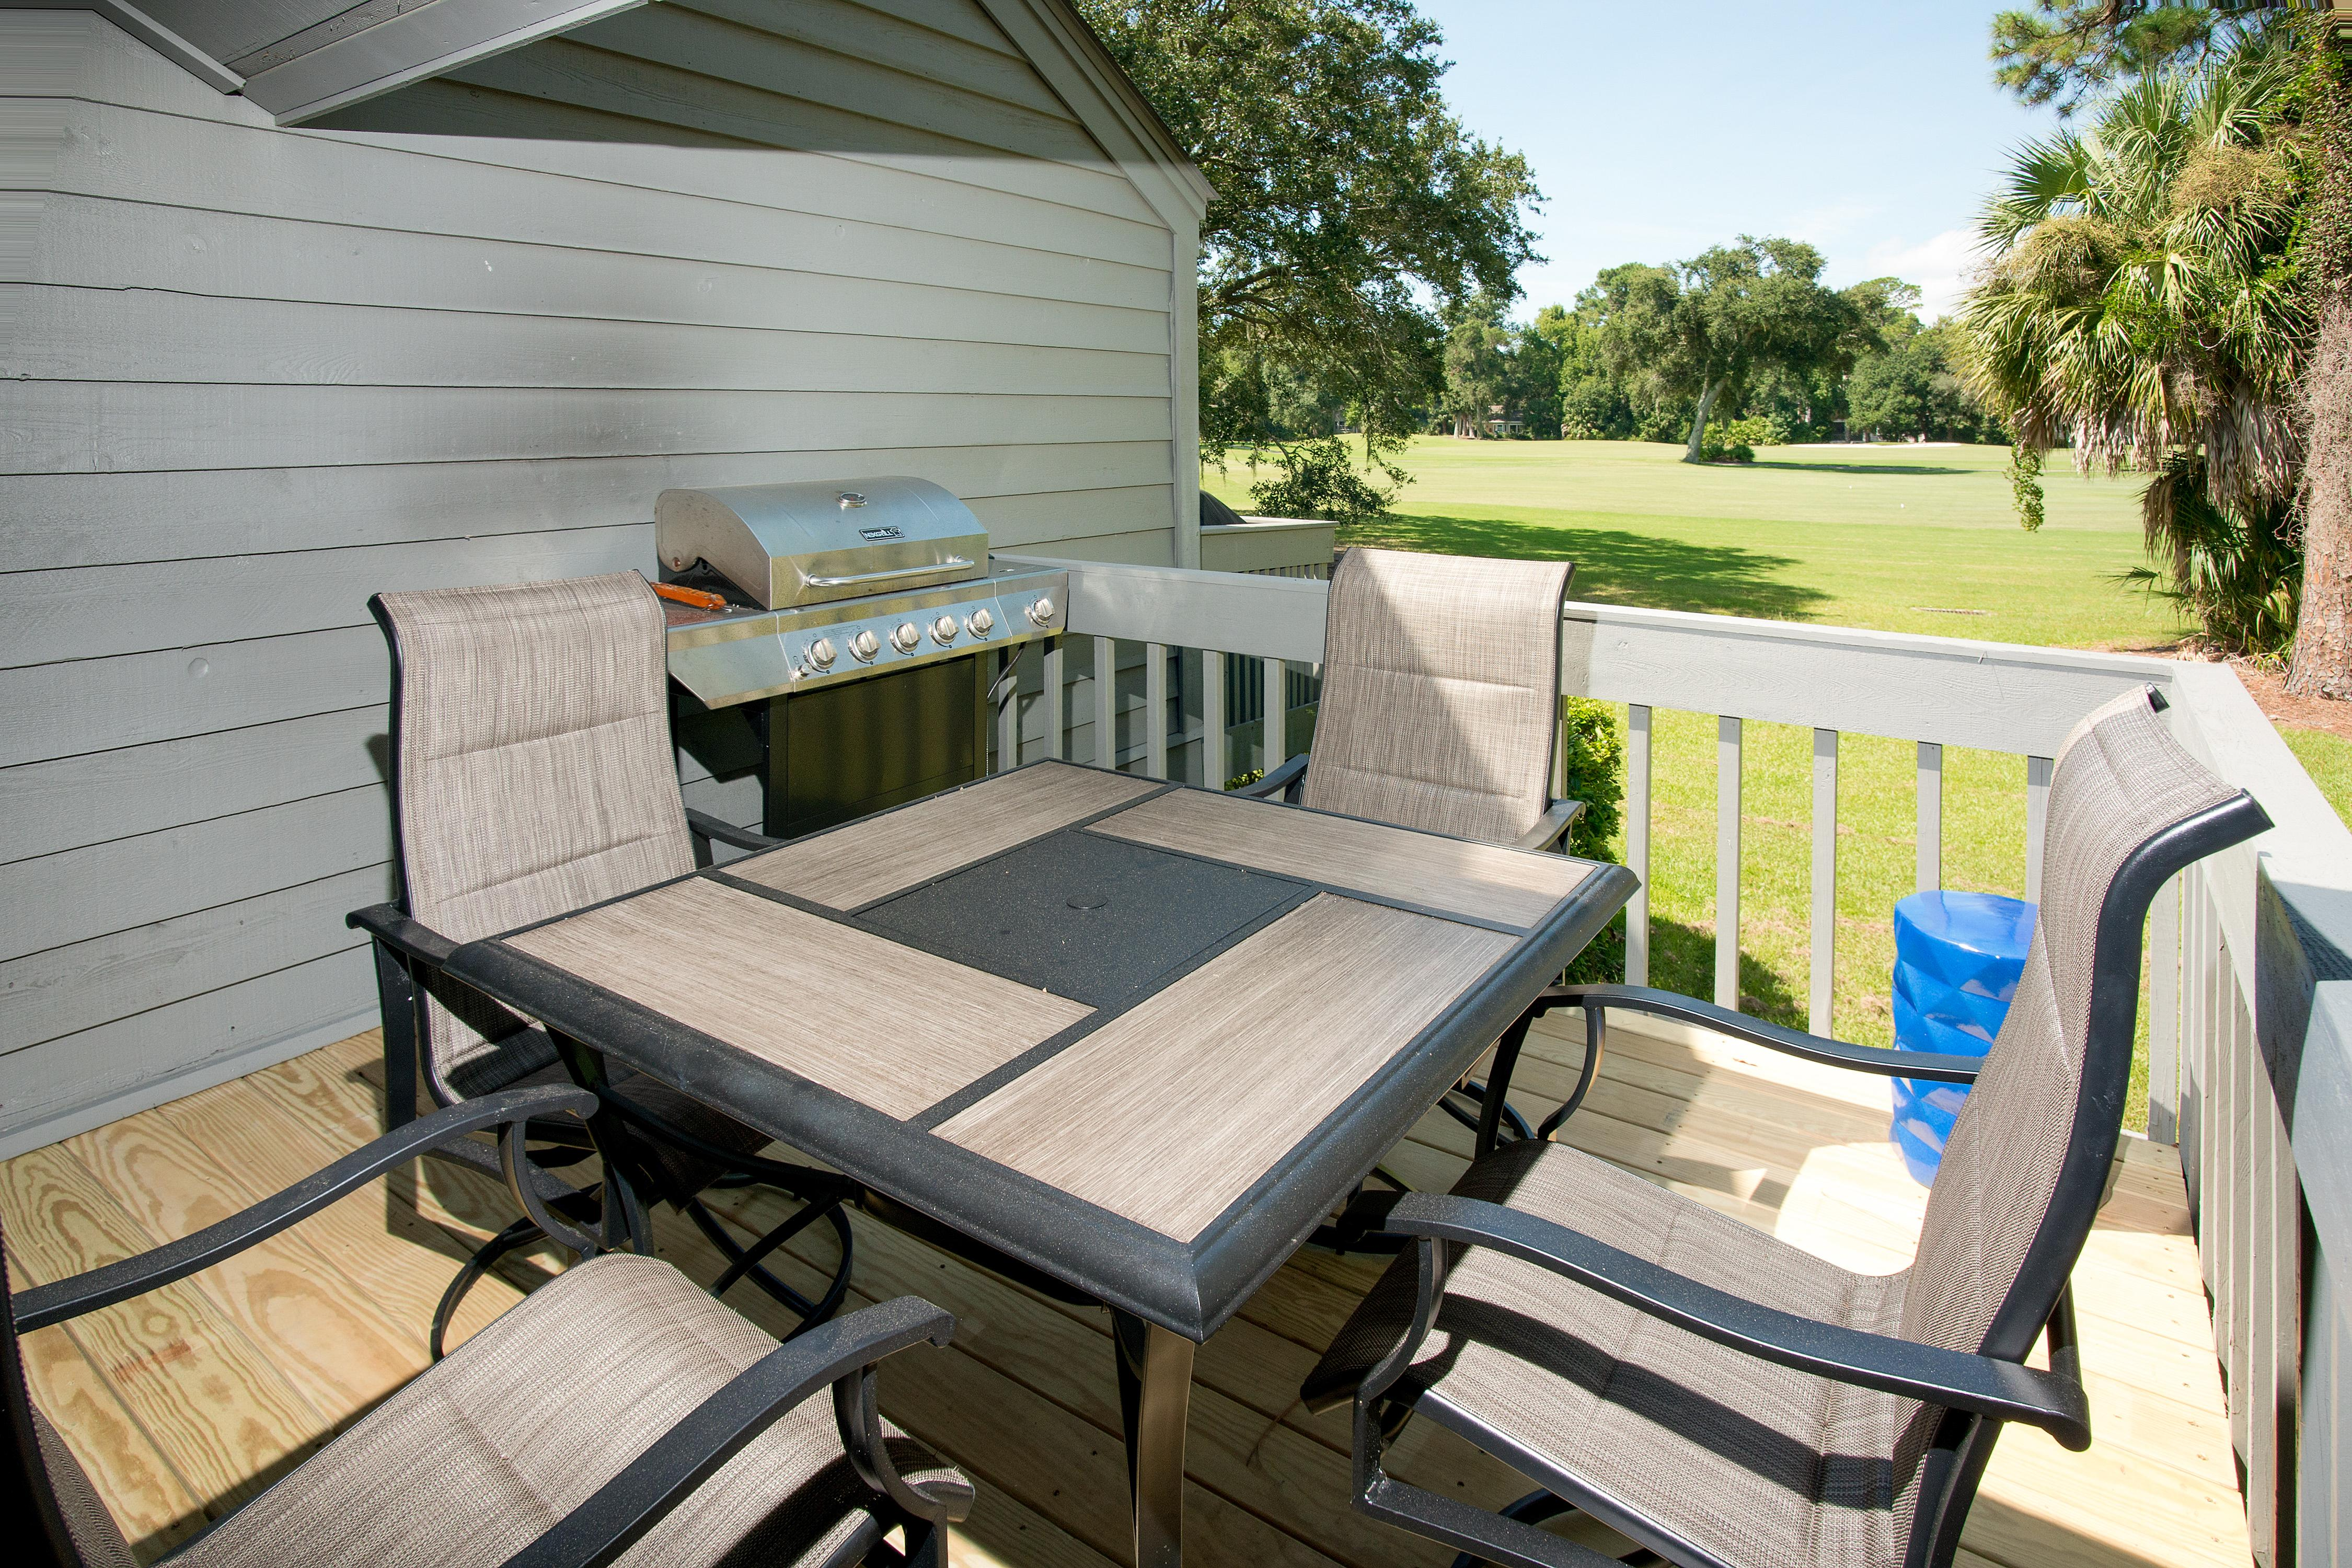 Share alfresco meals on the elevated back deck.